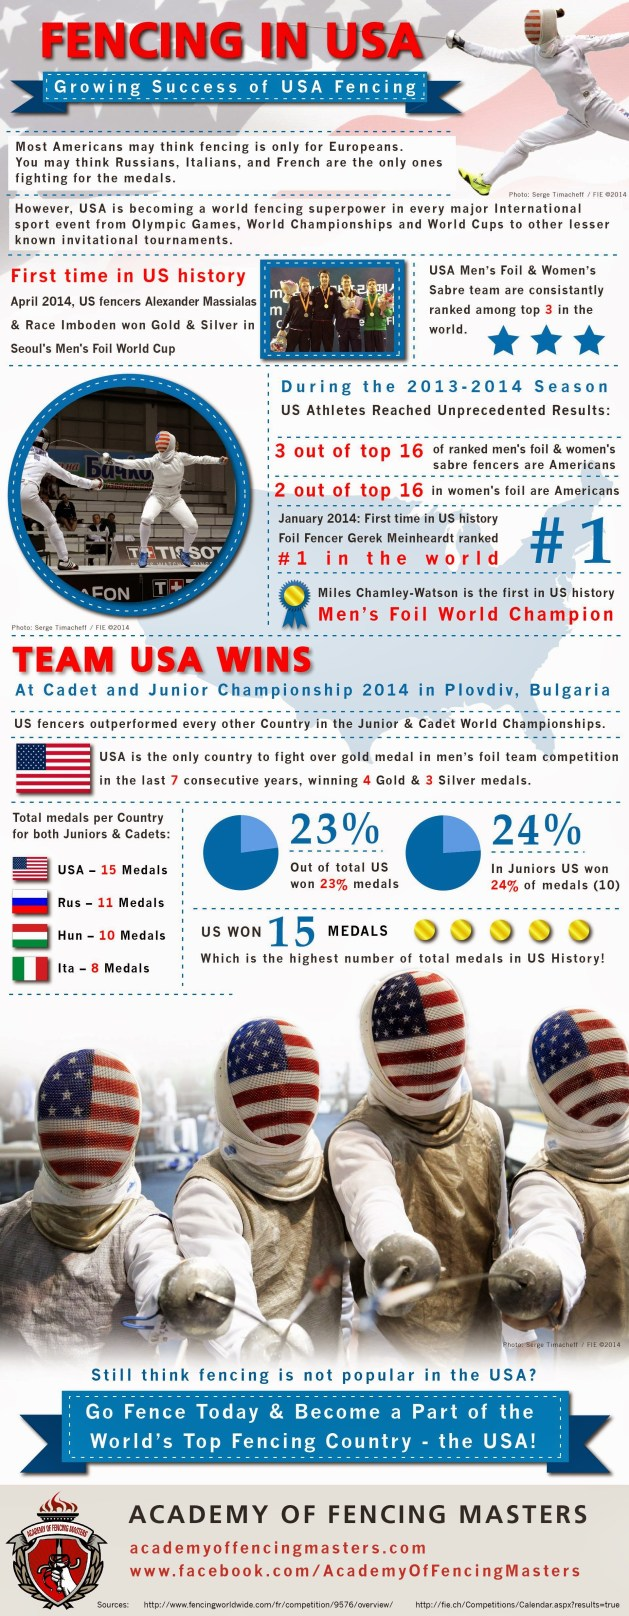 Growing Success of USA Fencing